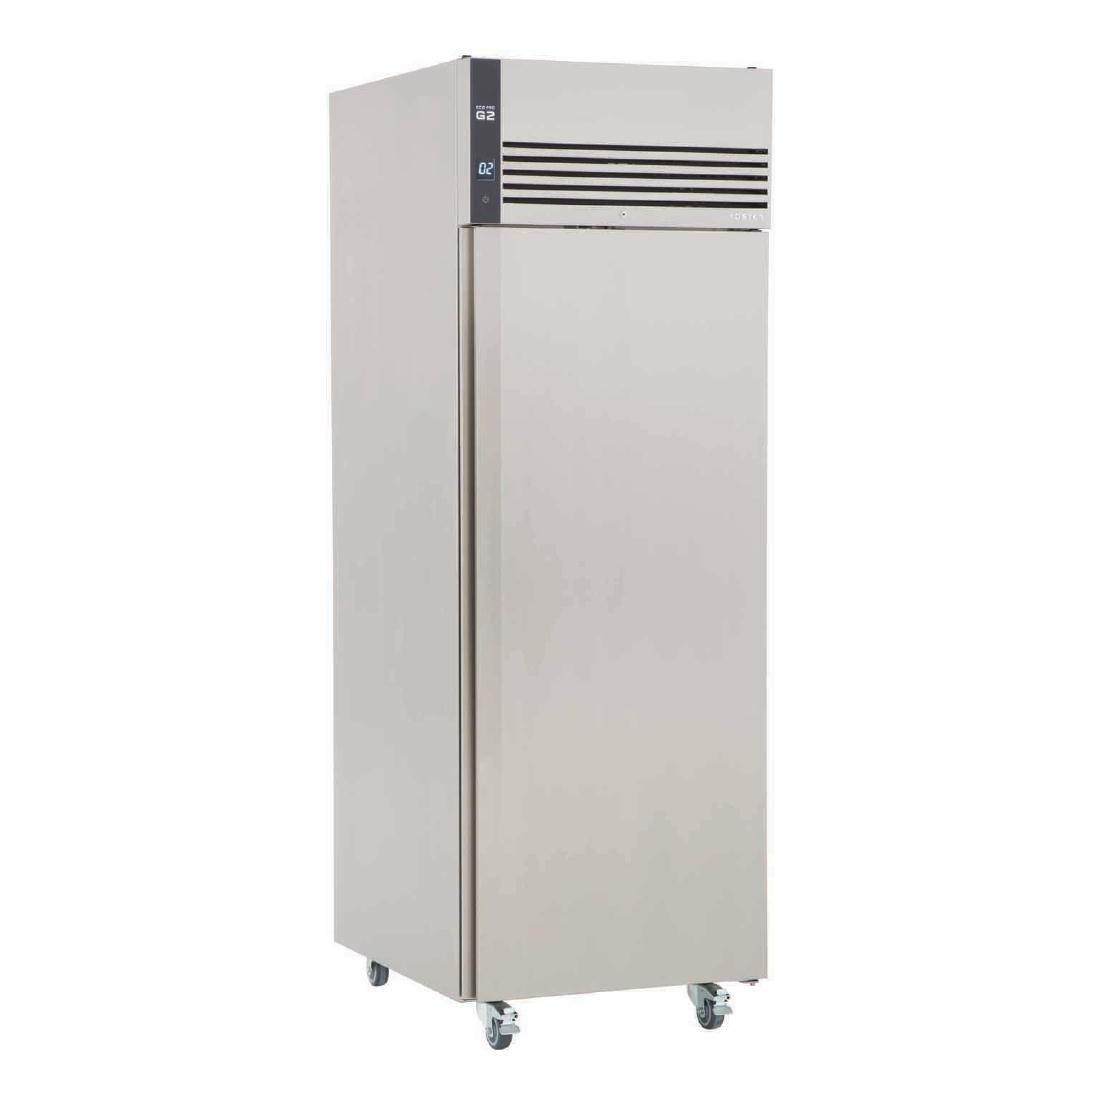 Foster EcoPro G2 1 Door 600Ltr Cabinet Meat Fridge with Back EP700M 10/122